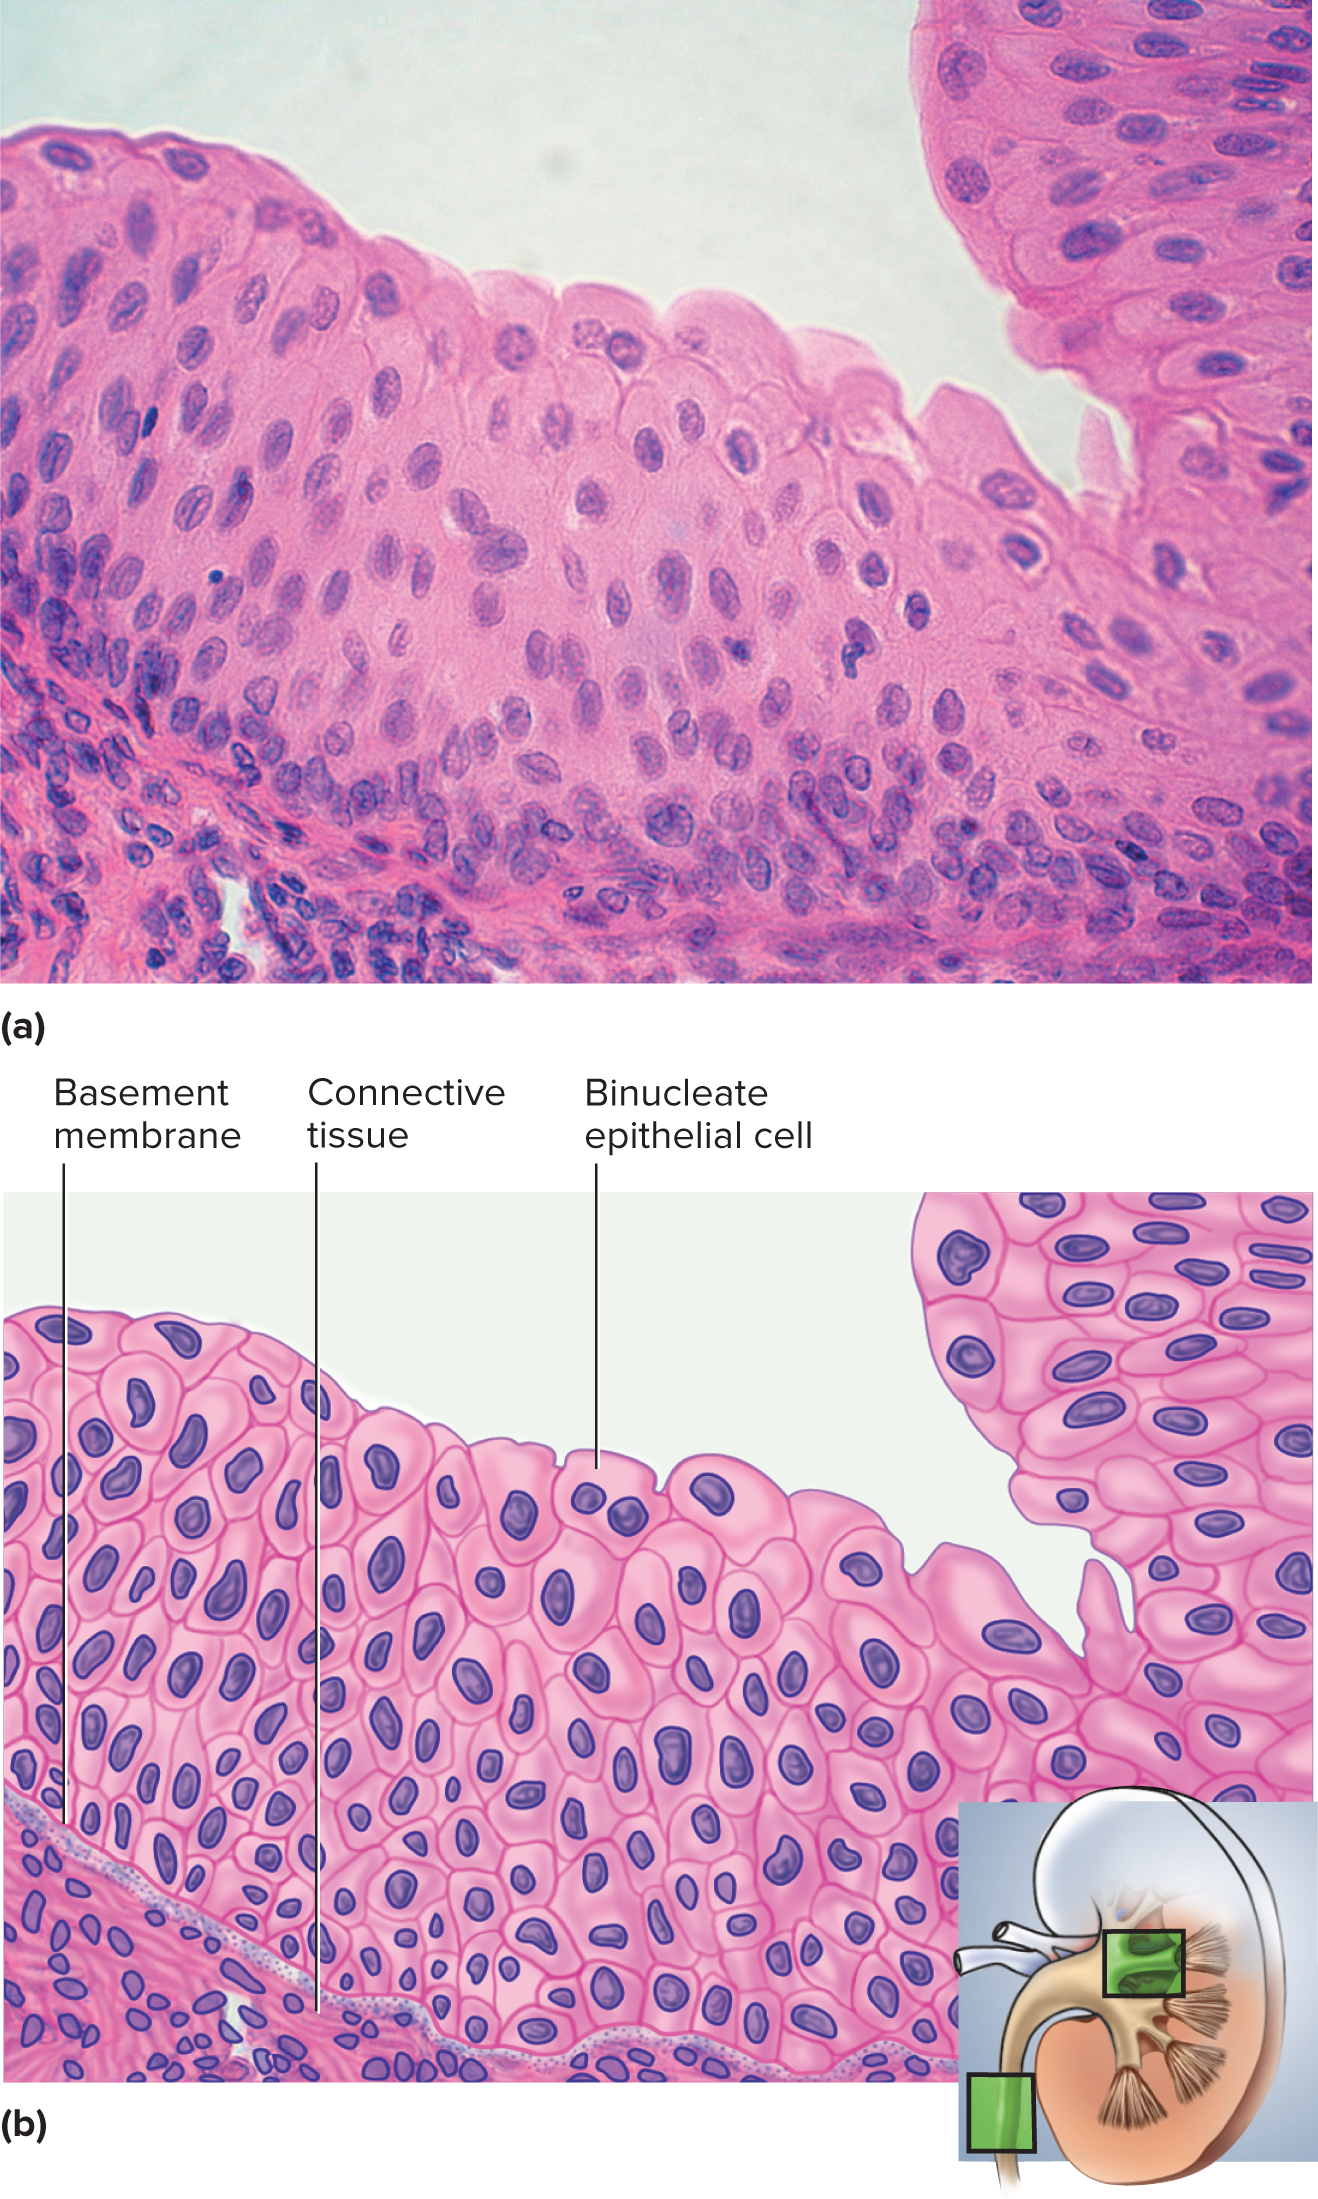 Chapter 5 Histology Flashcards Chegg Com